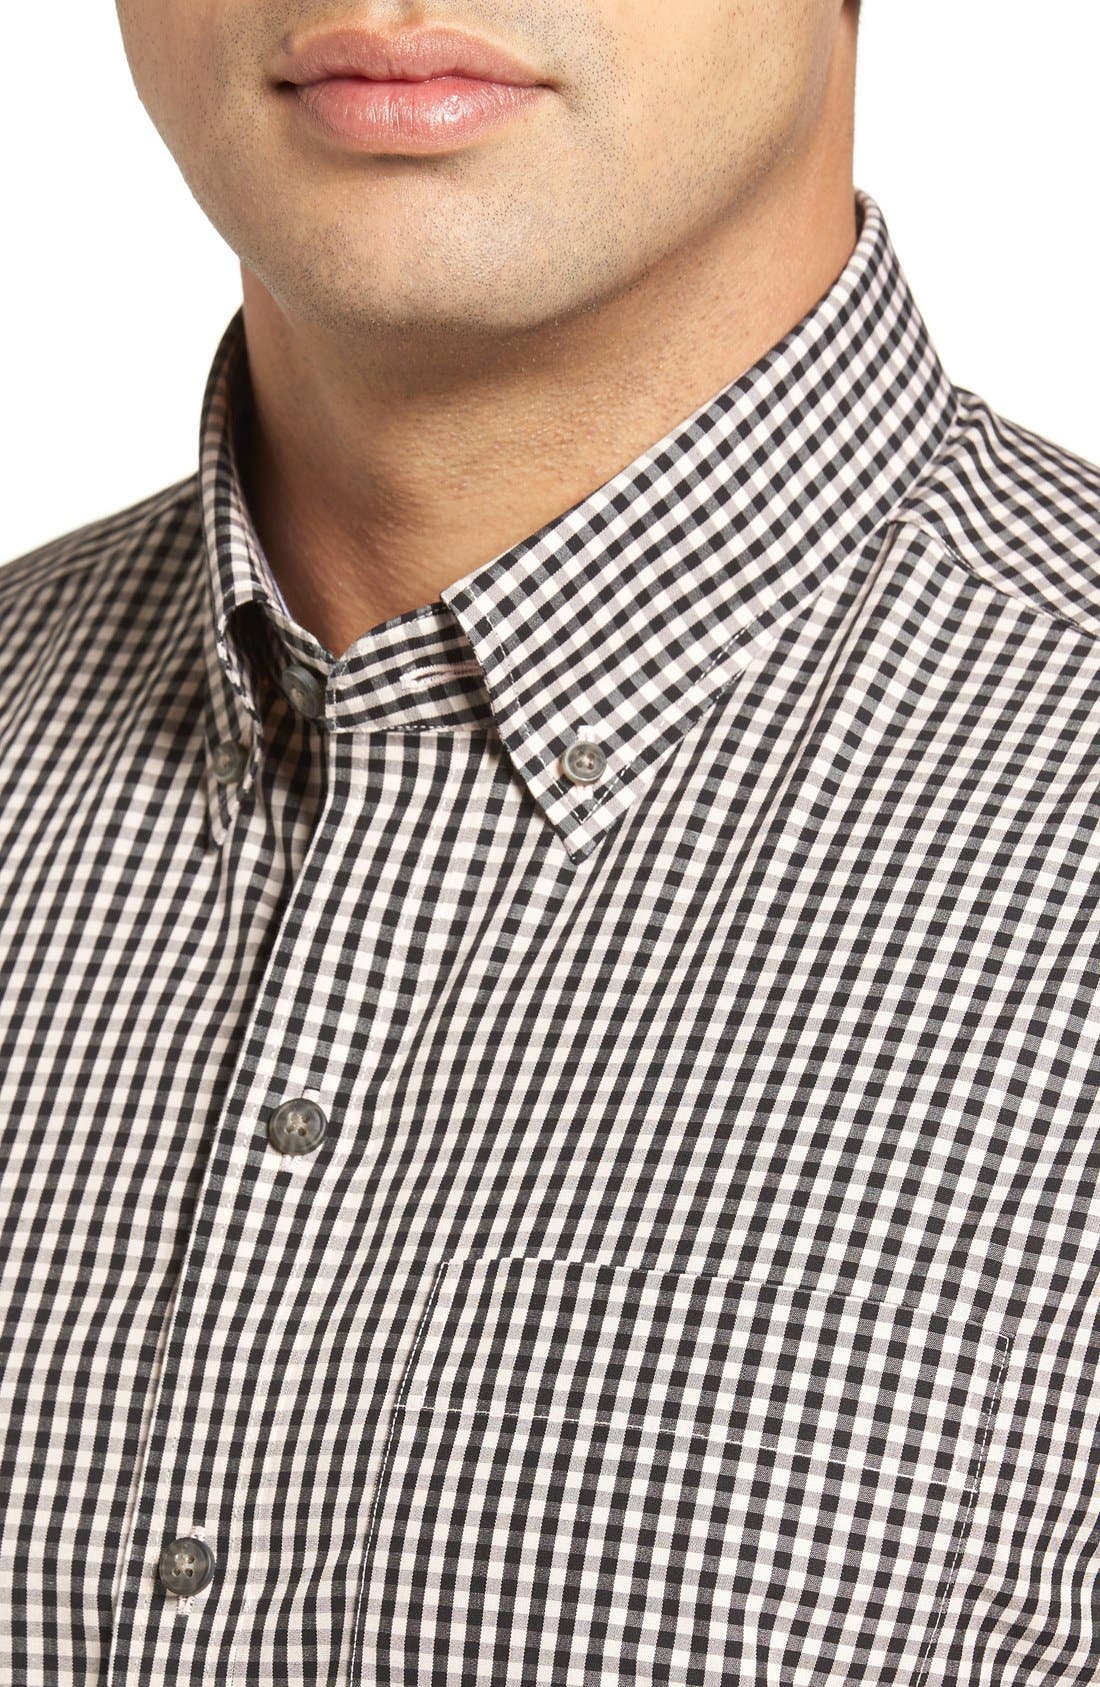 'Willard' Check Sport Shirt,                             Alternate thumbnail 2, color,                             Quaint